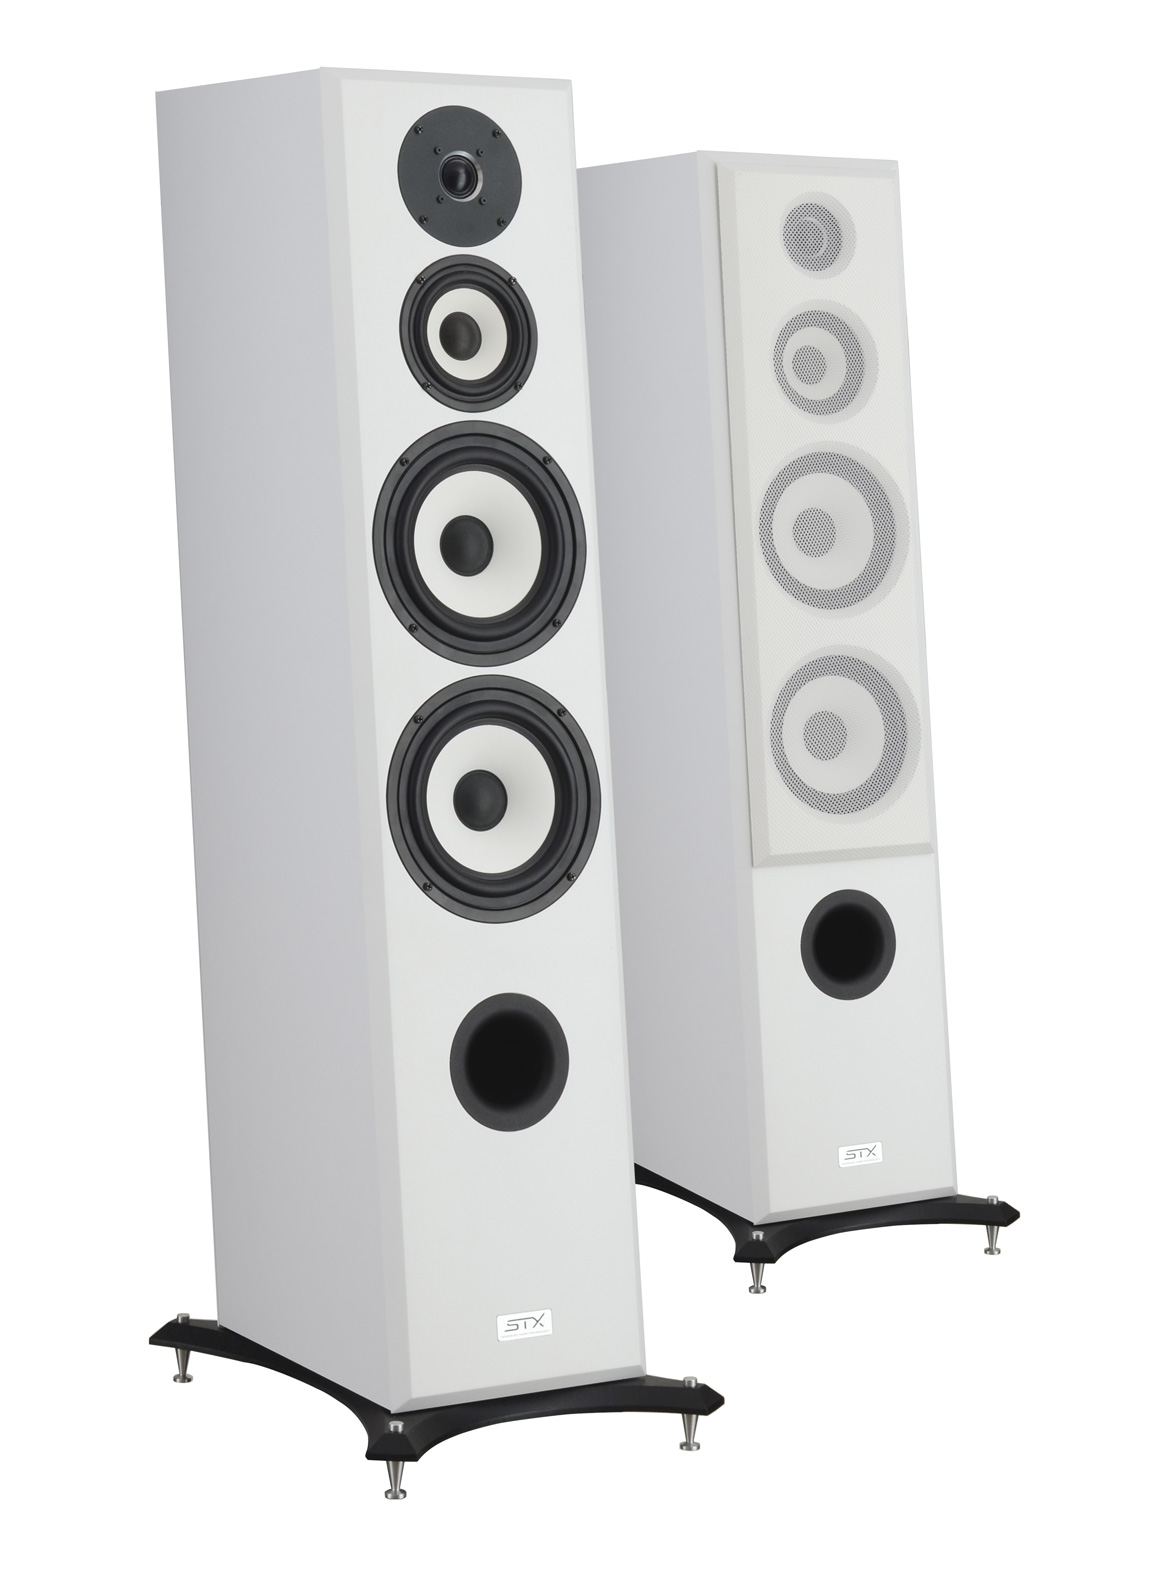 STX Electrino 250 speakers